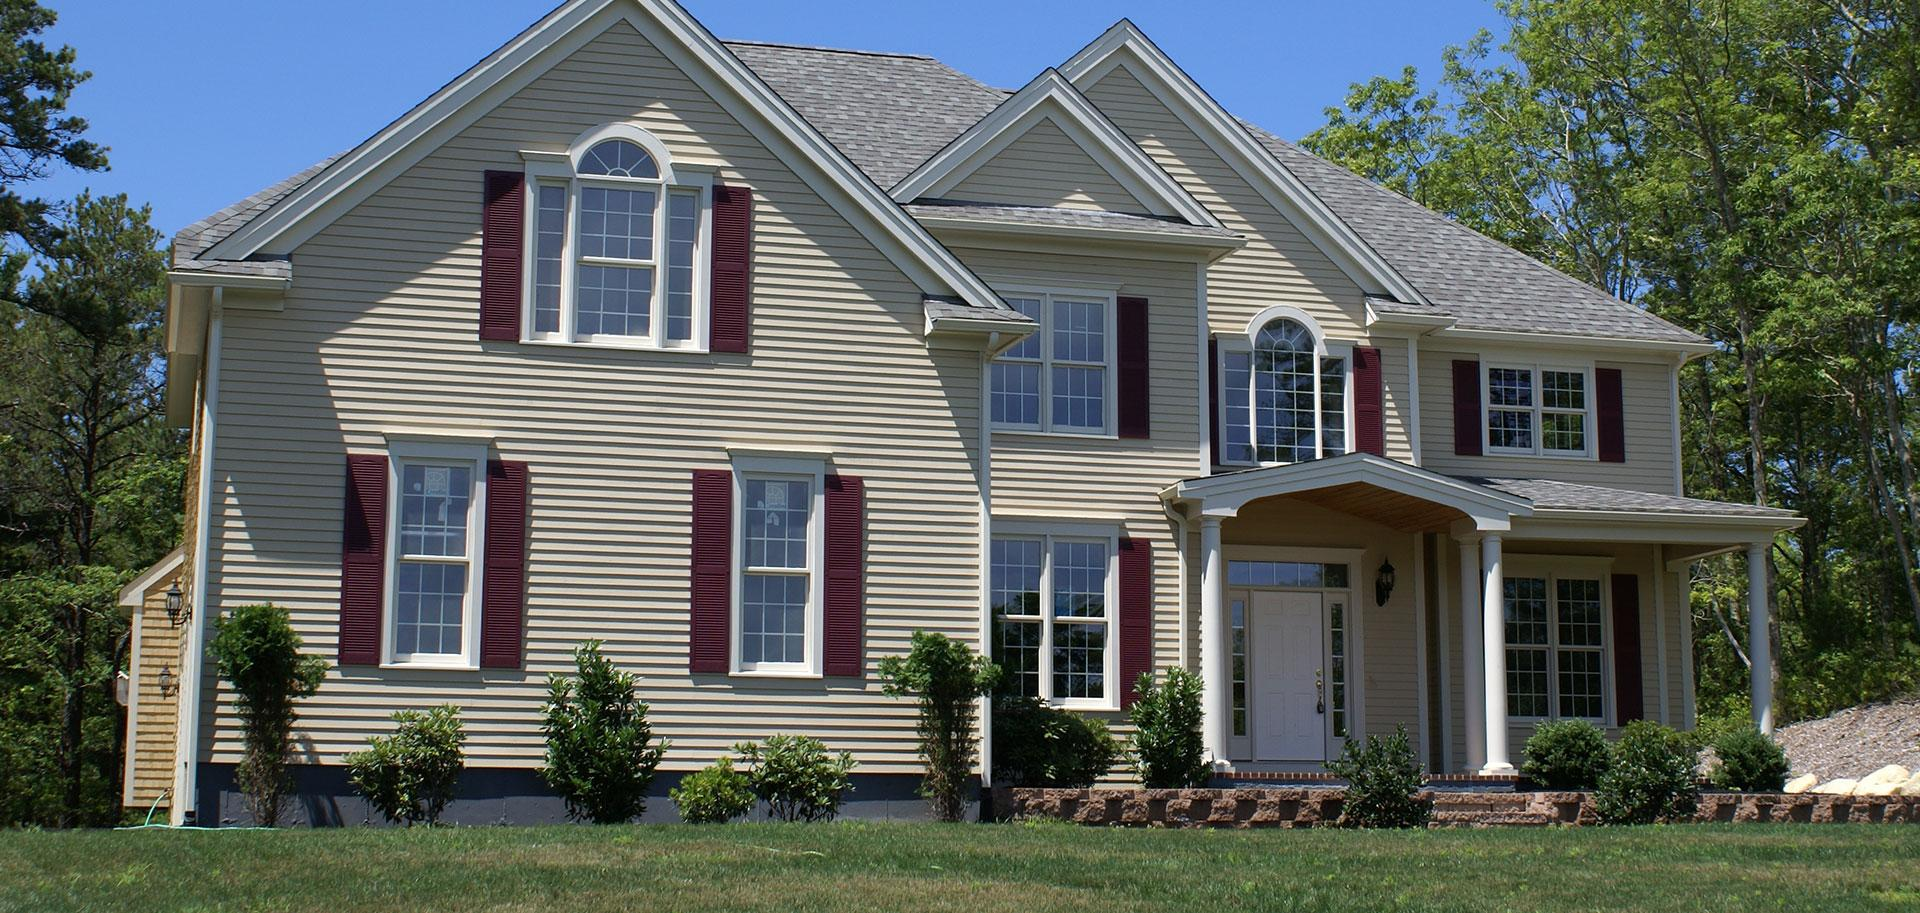 WE'LL ASSESS YOUR HOME FROM ROOF TO FOUNDATION